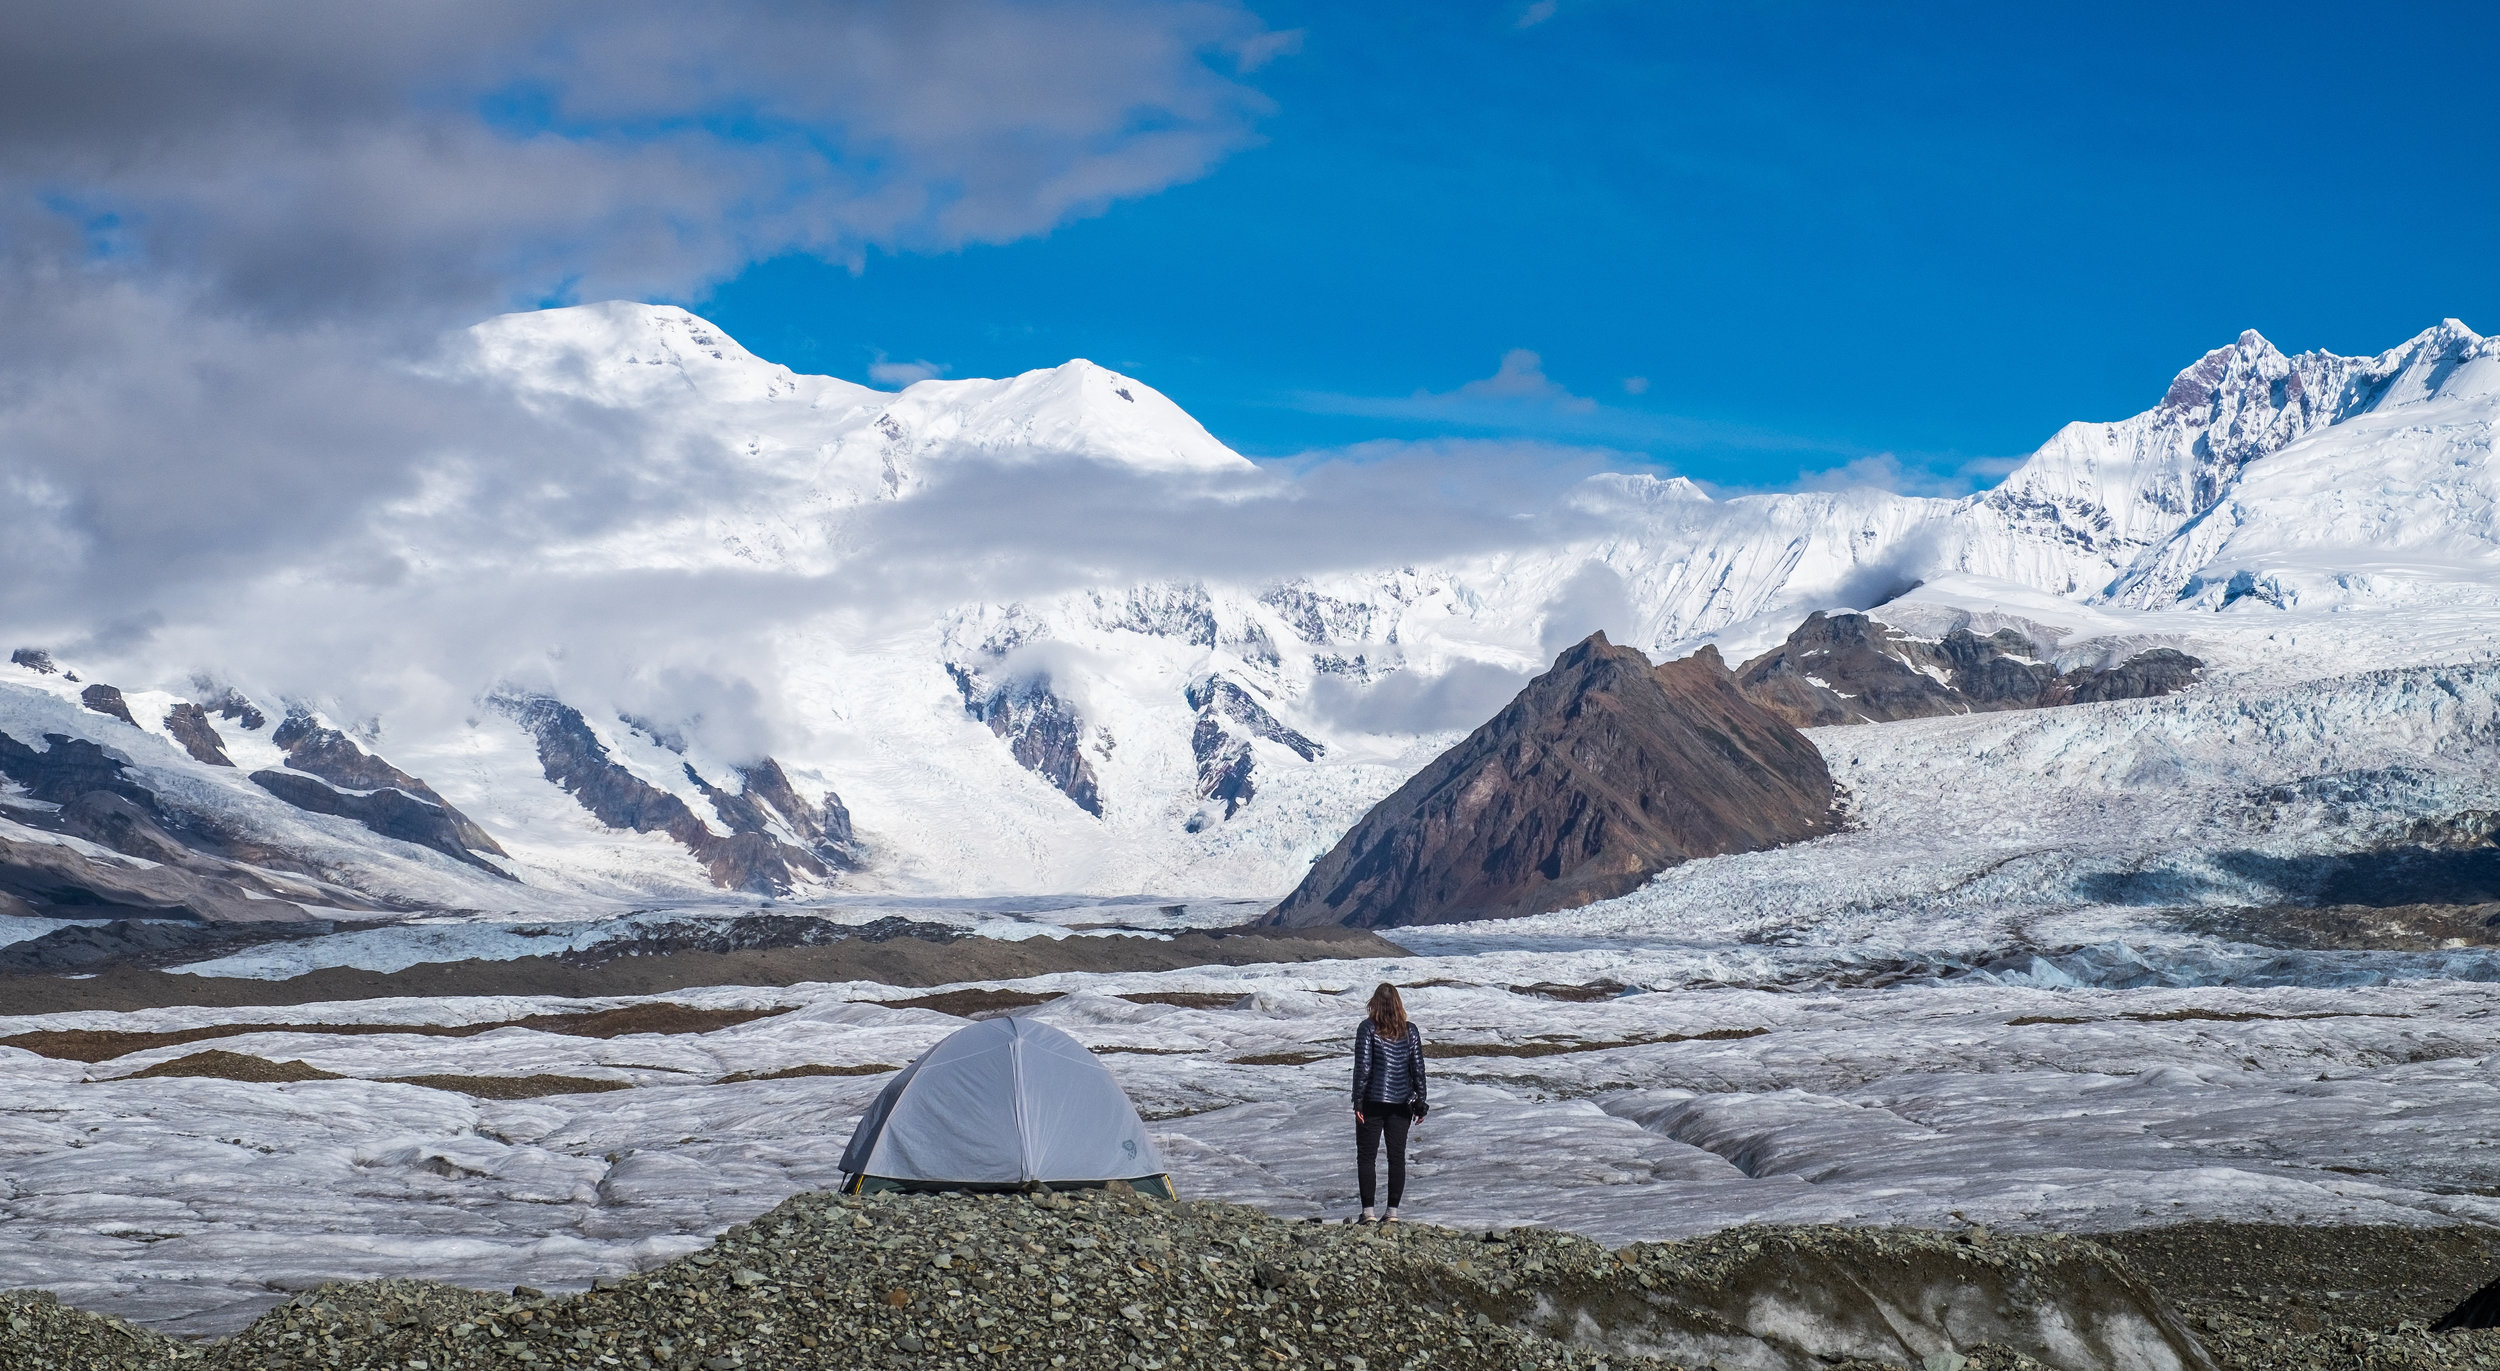 All set up to camp on the Kennecott Glacier in Wrangell St. Elias National Park & Preserve. Credit: JONATHAN IRISH